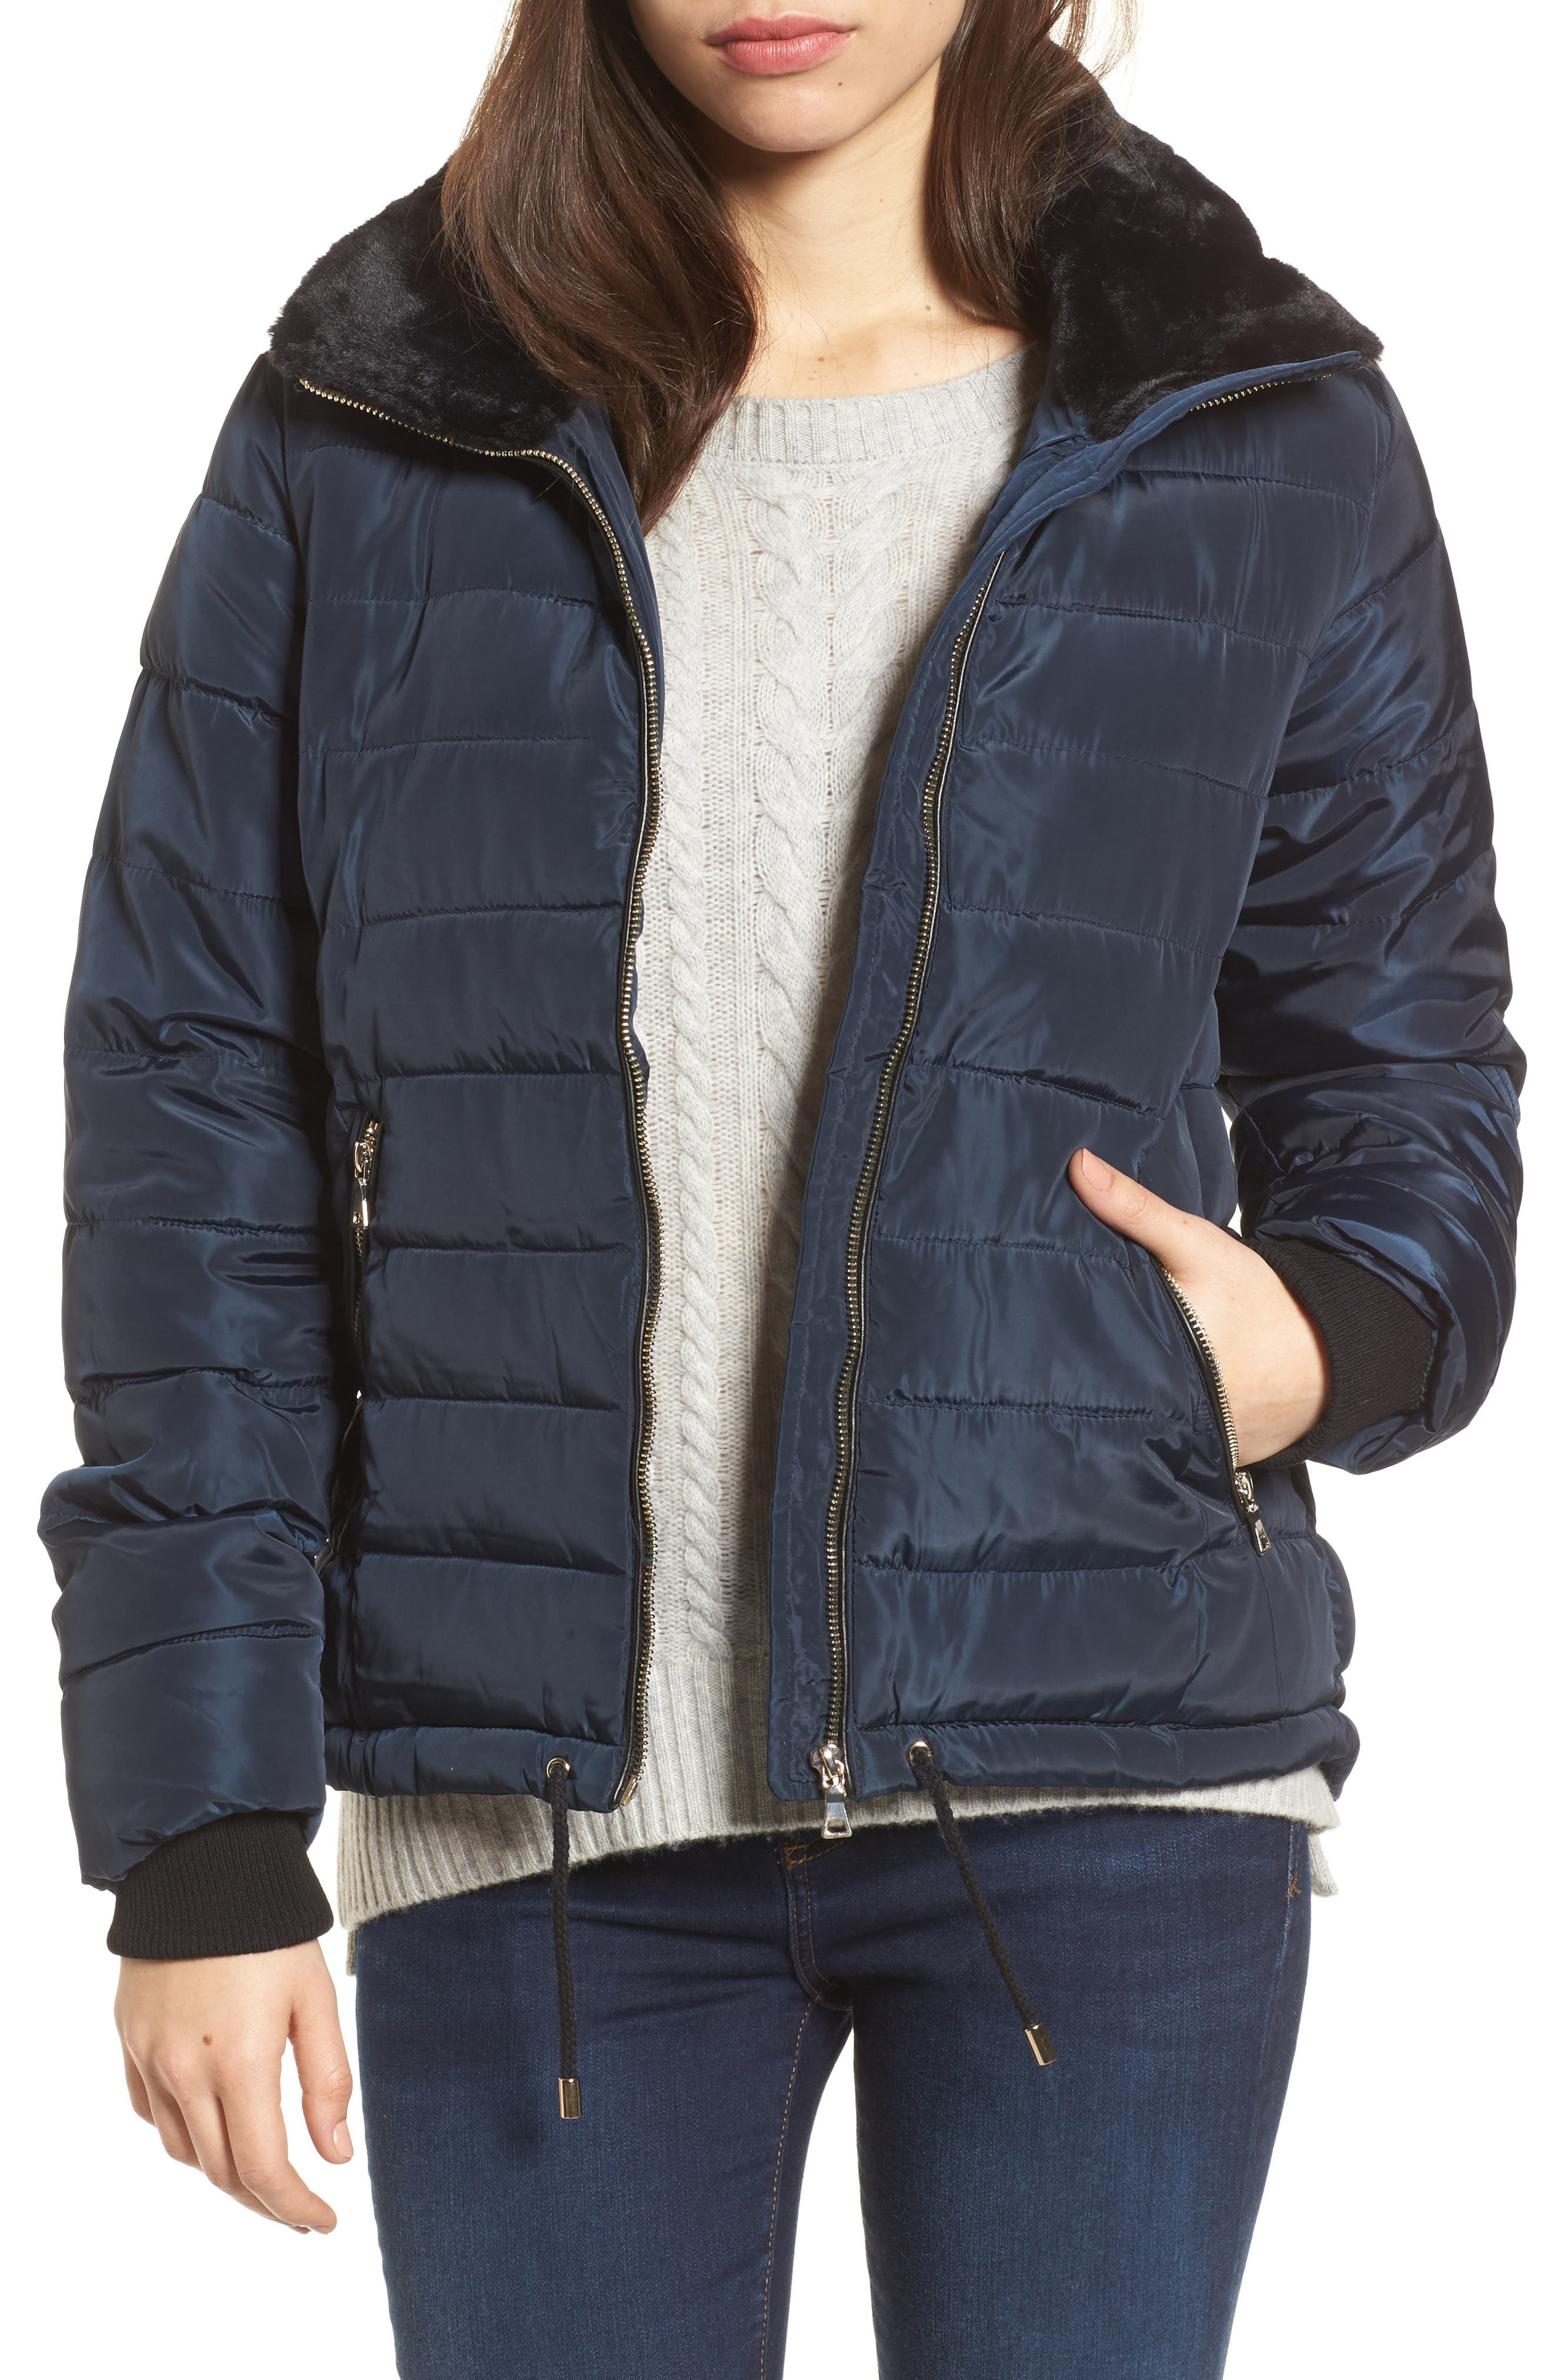 Alternate Image 1 Selected - Dorothy Perkins Puffer Jacket with Faux Fur Collar Lining